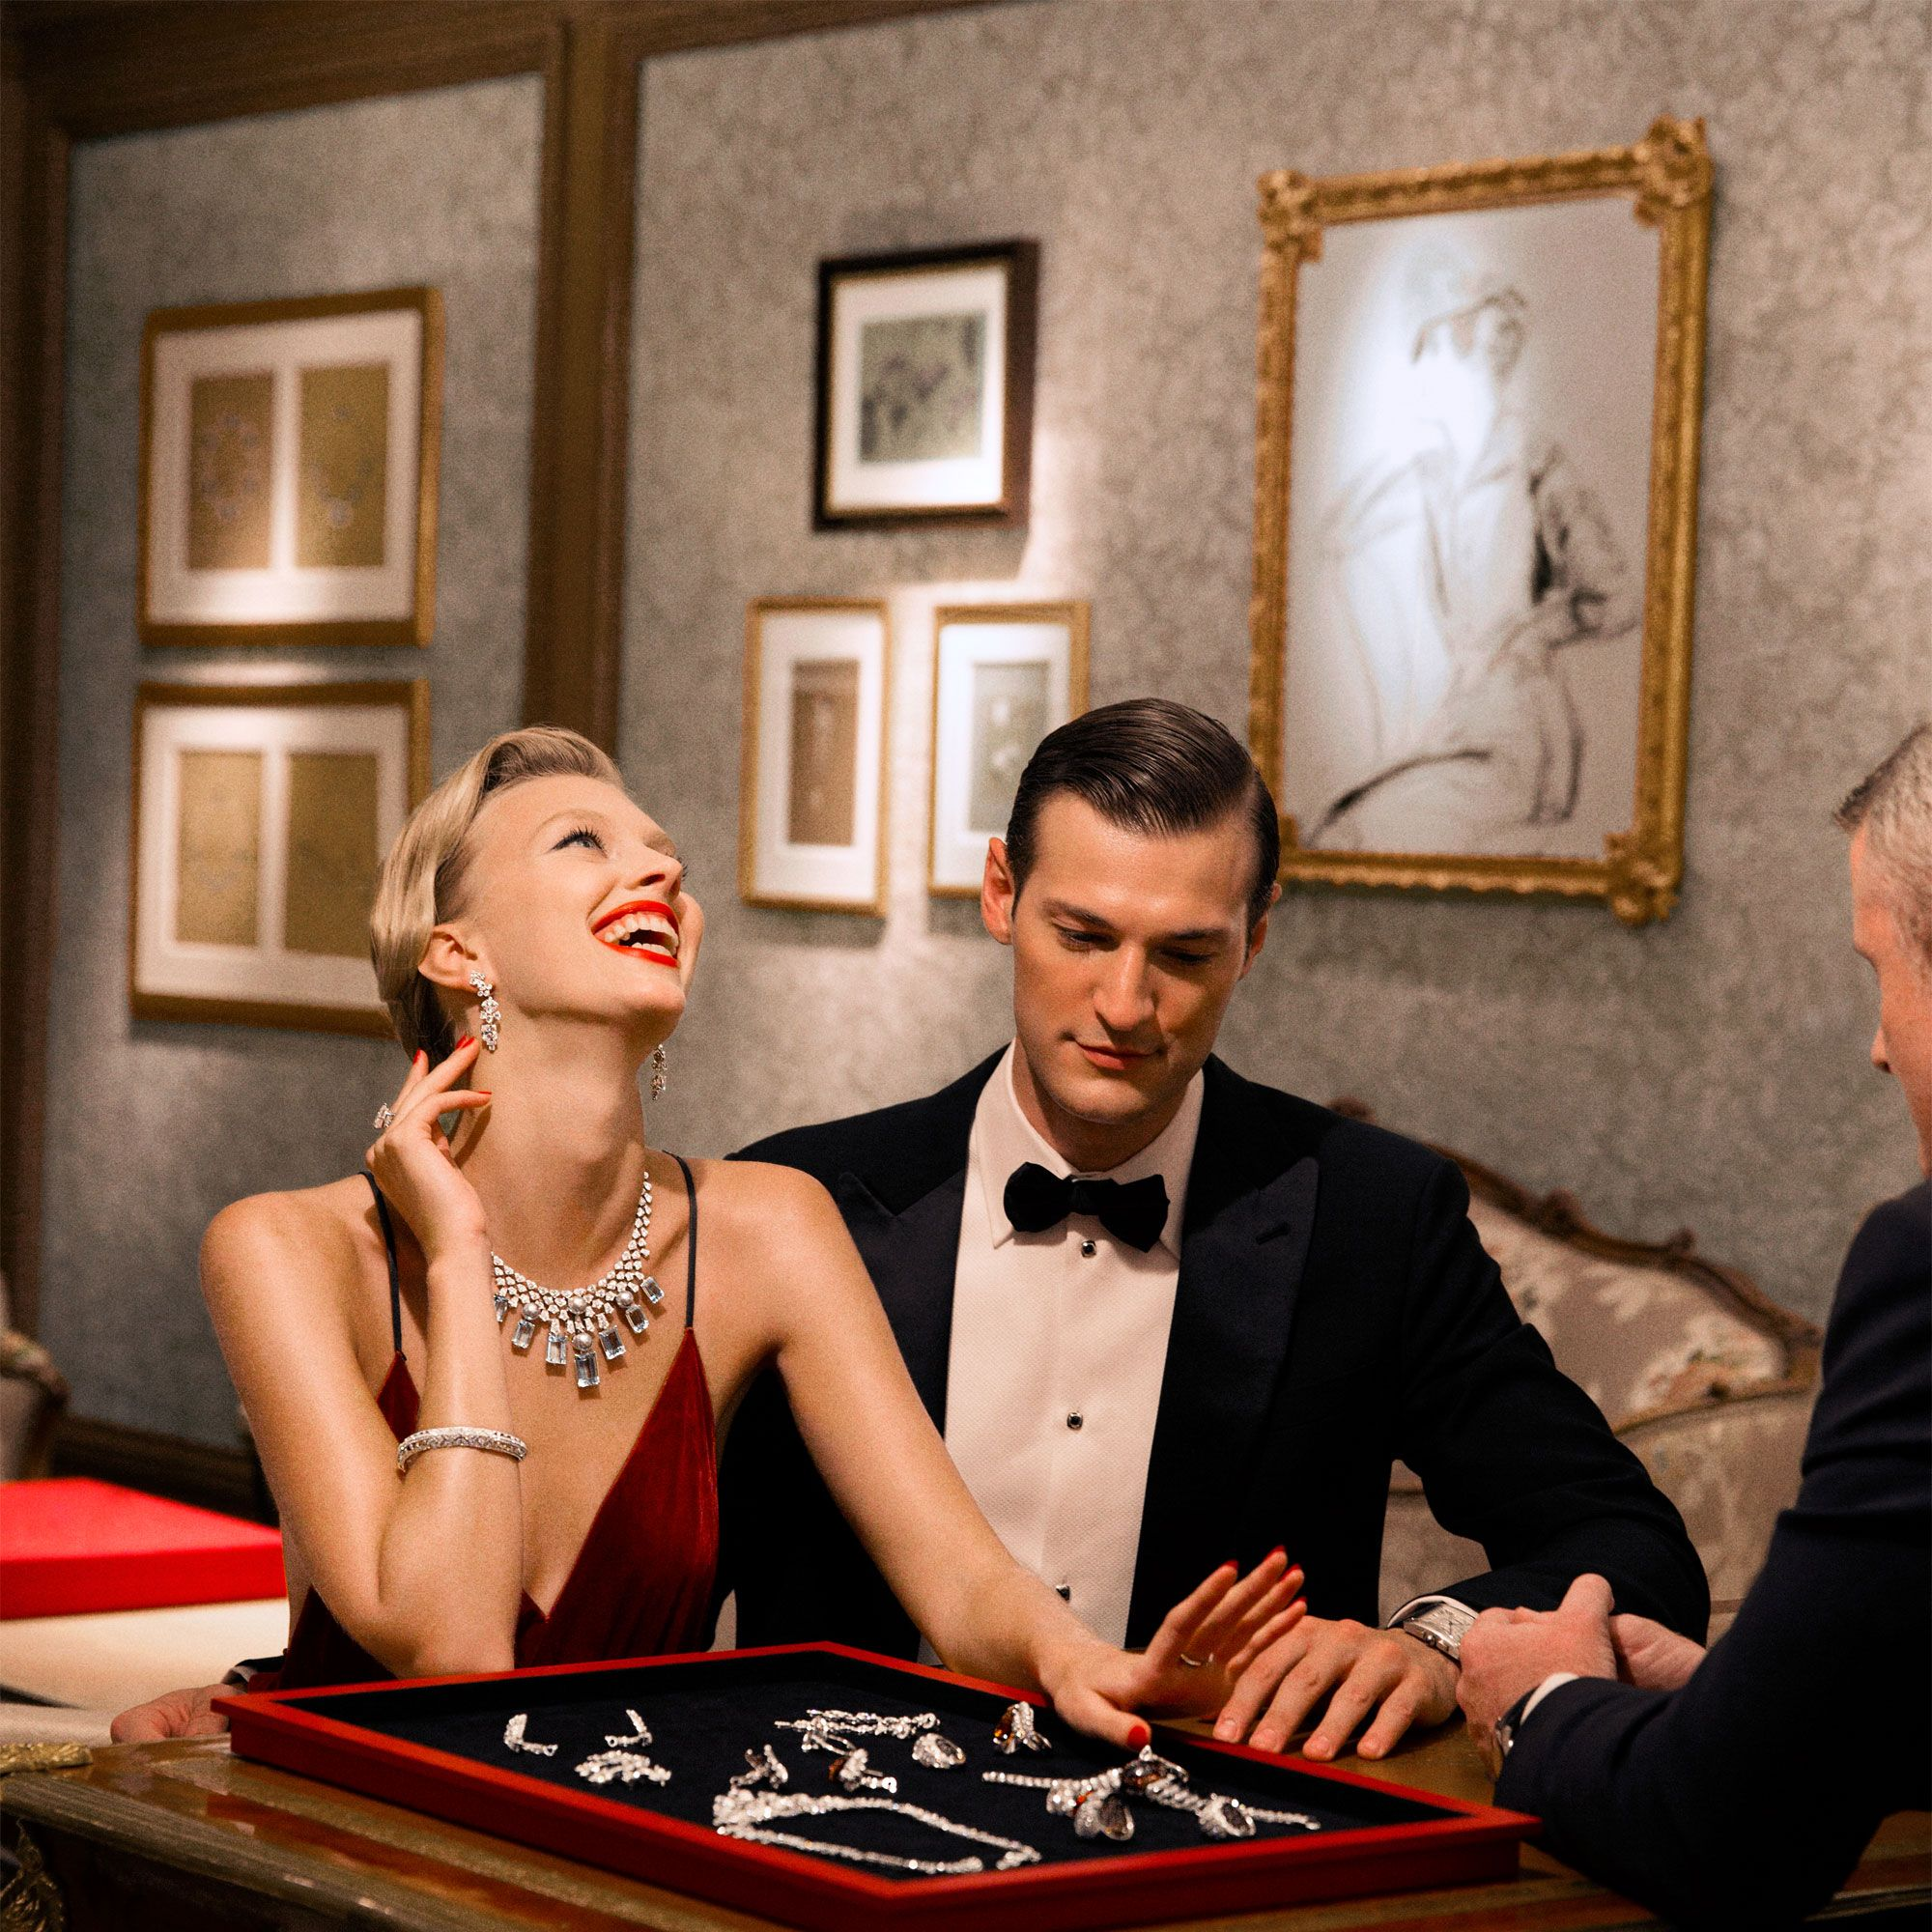 """<p>Dripping in diamonds in the VIP salon. </p><p><em data-redactor-tag=""""em"""" data-verified=""""redactor""""><strong data-redactor-tag=""""strong"""" data-verified=""""redactor"""">Ralph Lauren Collection </strong>dress, $4,790, <a href=""""http://www.ralphlauren.com/home/index.jsp?direct"""" target=""""_blank"""" data-tracking-id=""""recirc-text-link"""">ralphlauren.com</a>&#x3B; <strong data-redactor-tag=""""strong"""" data-verified=""""redactor"""">Cartier </strong>jewelry (on tray), prices upon request, 800-CARTIER&#x3B; <strong data-redactor-tag=""""strong"""" data-verified=""""redactor"""">Giorgio Armani</strong> tuxedo, $3,695, shirt, $825, and bow tie, $225, <a href=""""http://www.armani.com/us/giorgioarmani"""" target=""""_blank"""" data-tracking-id=""""recirc-text-link"""">armani.com</a>&#x3B; <strong data-redactor-tag=""""strong"""" data-verified=""""redactor"""">Cartier</strong> cuff links, $15,600, stud sets, prices upon request, and watch, $9,950, 800-CARTIER&#x3B; <strong data-redactor-tag=""""strong"""" data-verified=""""redactor"""">Church's</strong> shoes, $615, <a href=""""http://www.church-footwear.com/uk/en"""" target=""""_blank"""" data-tracking-id=""""recirc-text-link"""">church-footwear.com</a>. </em></p>"""